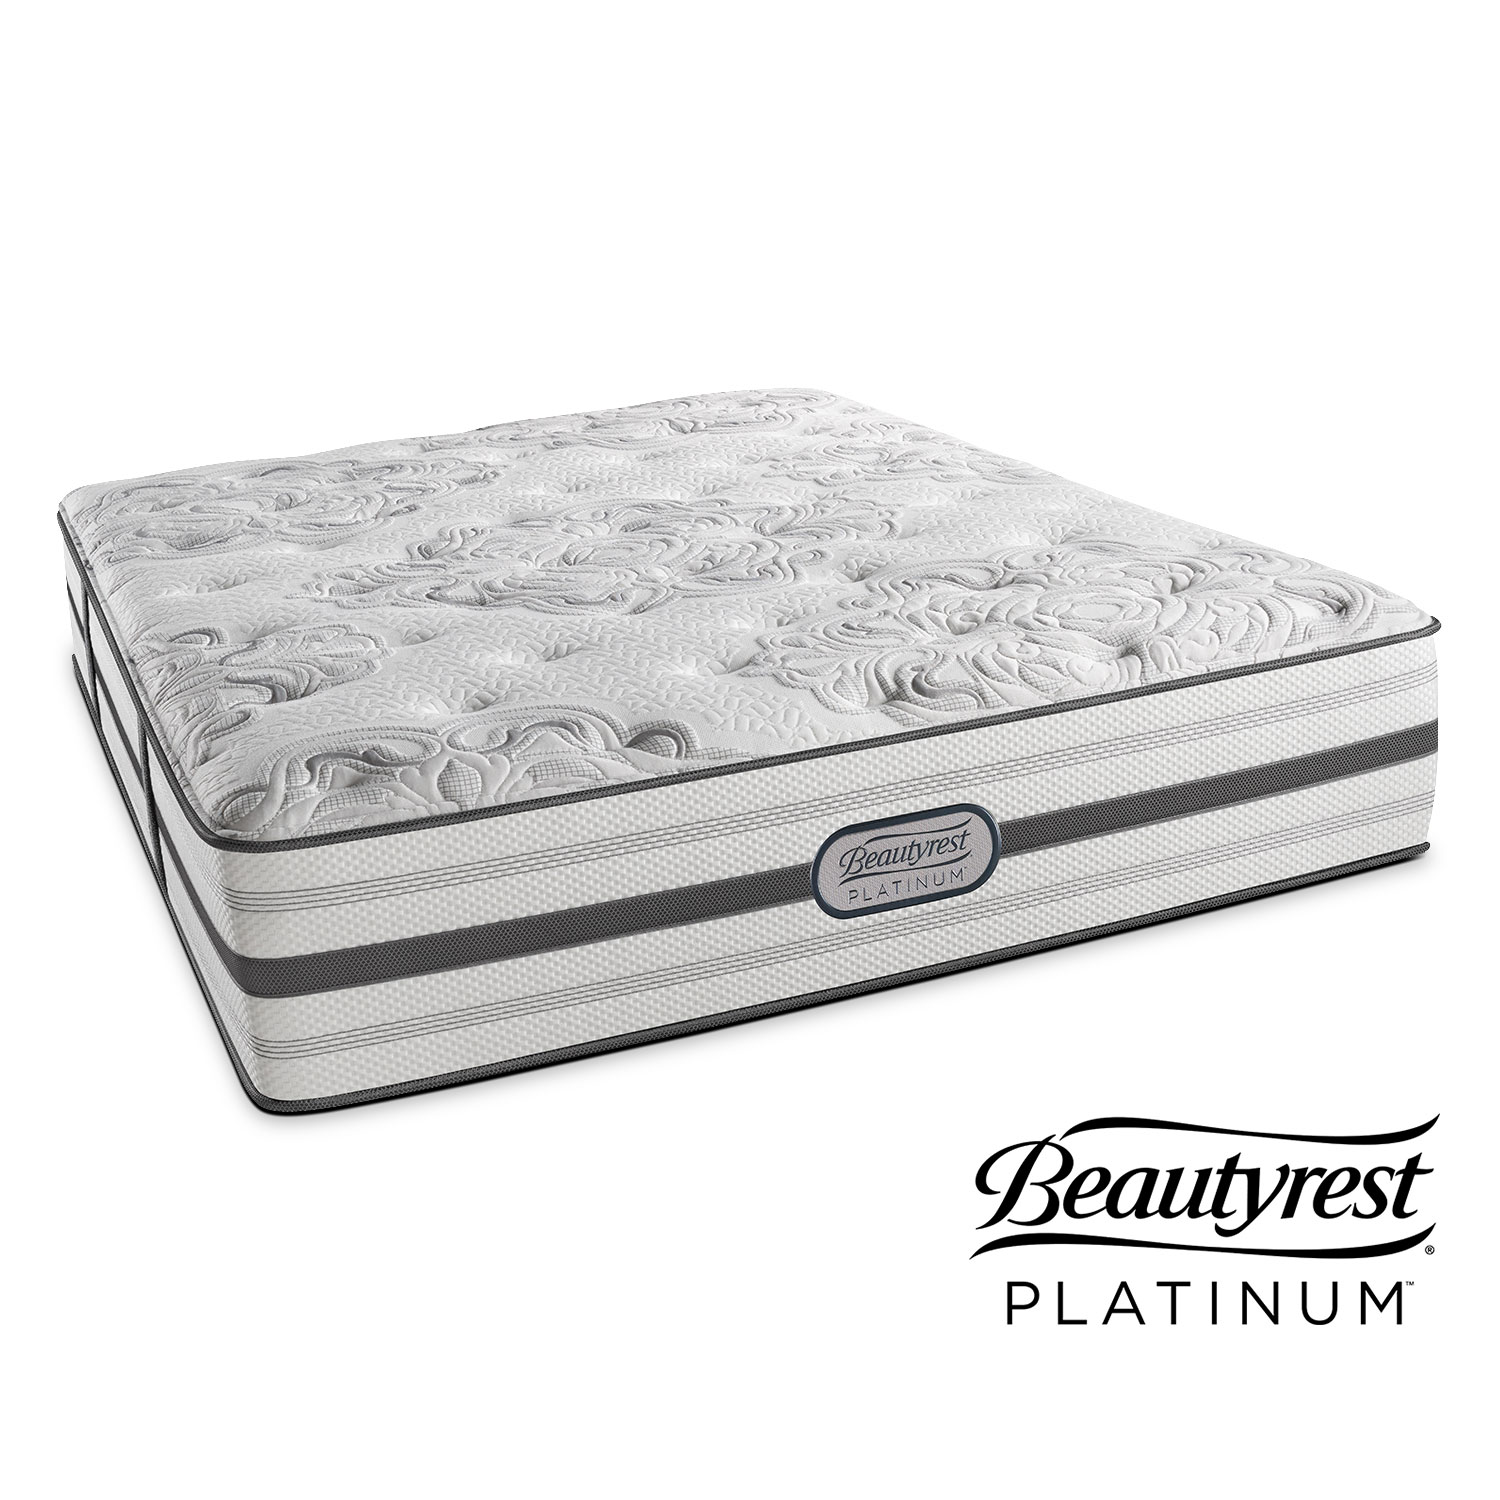 Mattresses and Bedding - Alexandria Luxury Firm Full Mattress